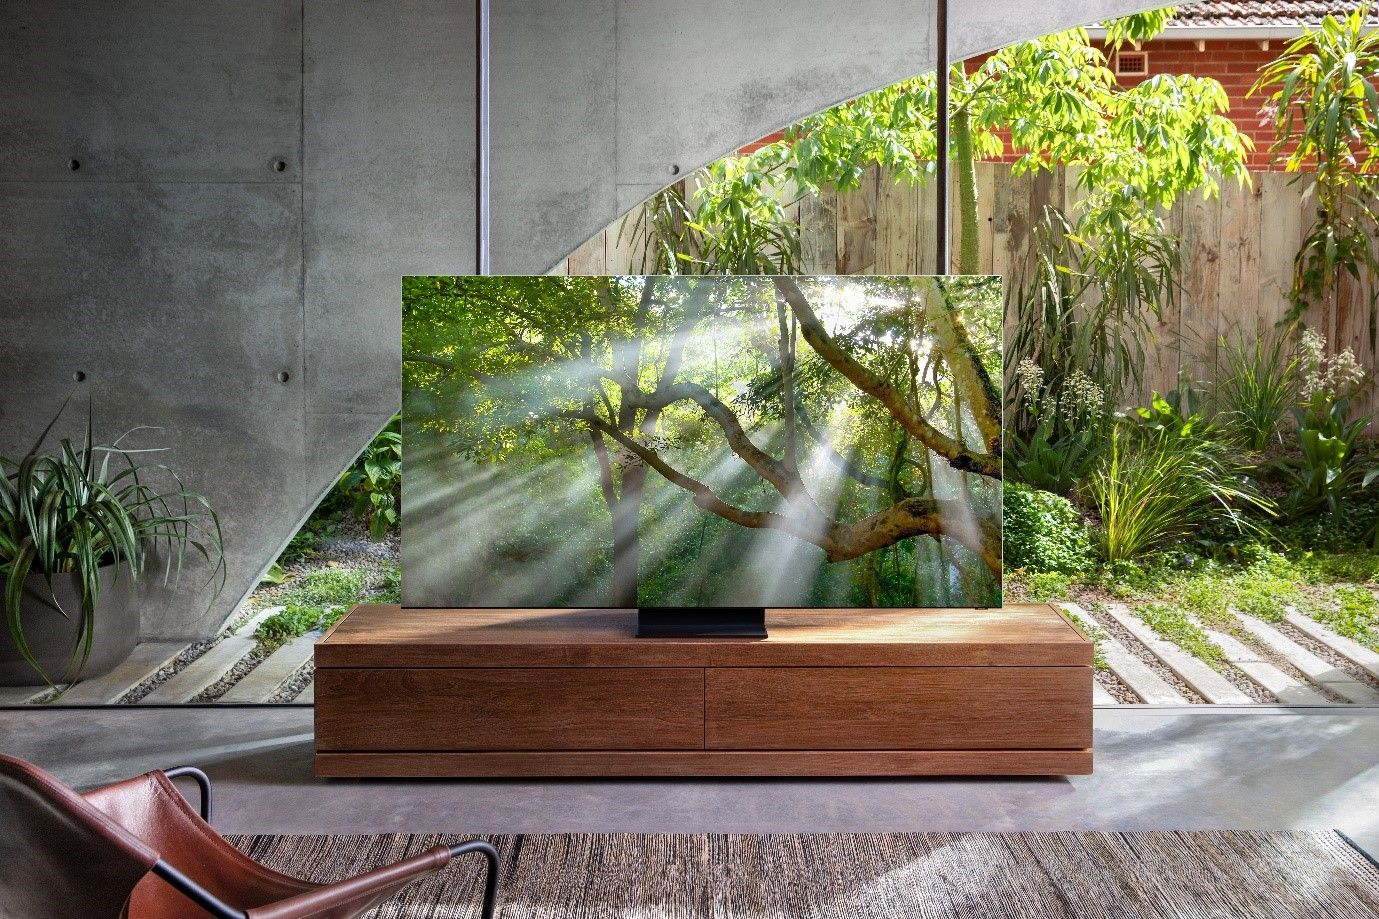 The 2020 QLED 8K TVs come with 99 percent screen-to-body ration, which is the highest in industry